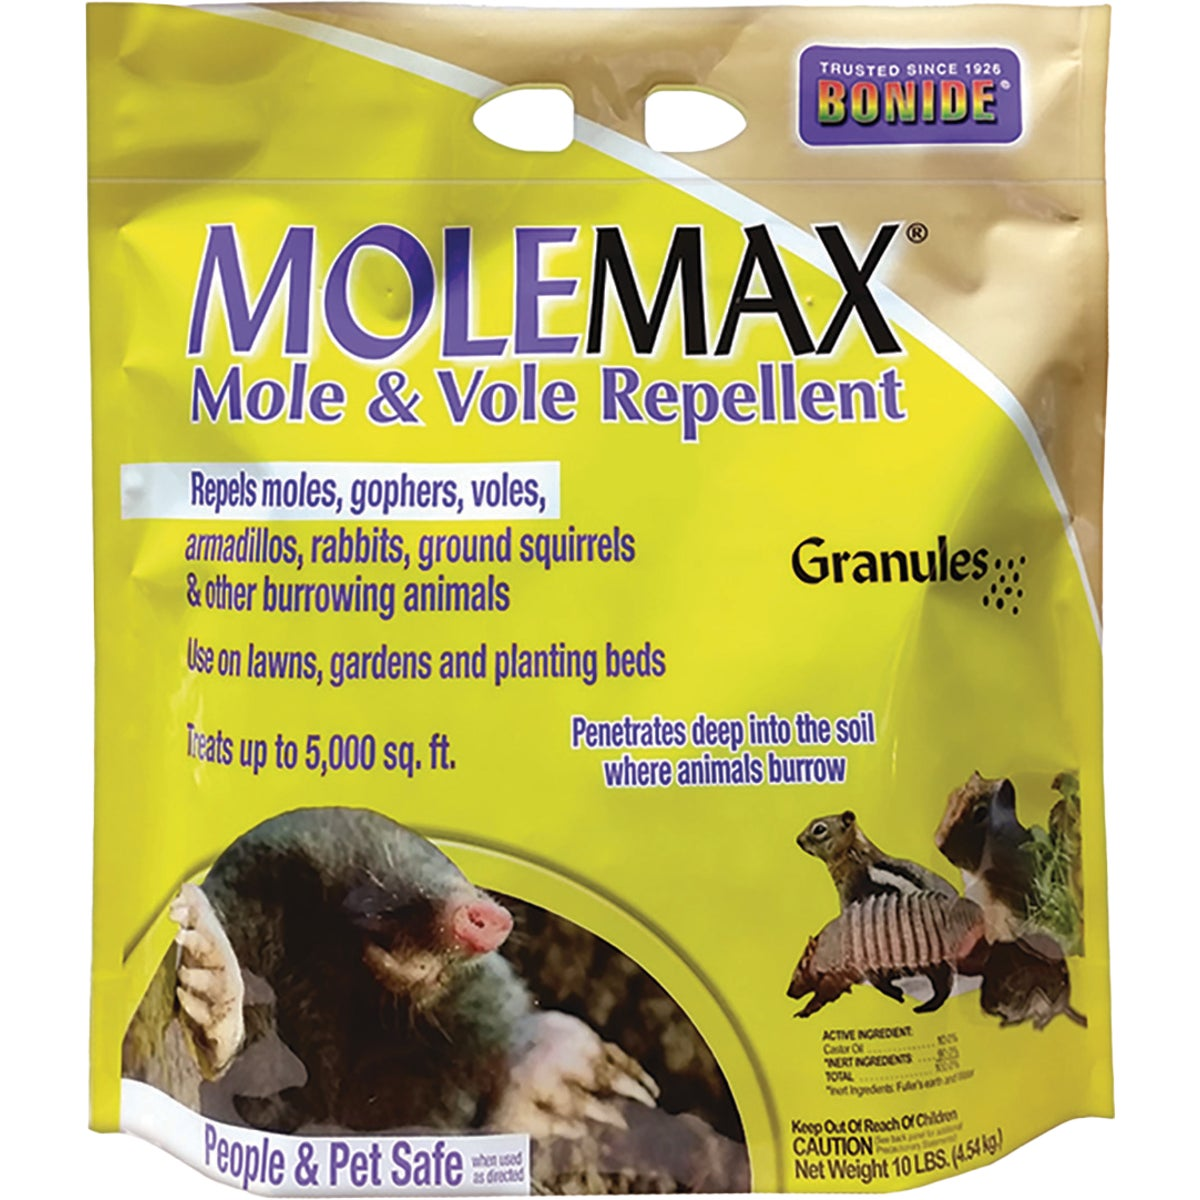 10LB GRAN MOLE REPELLENT - 692 by Bonide